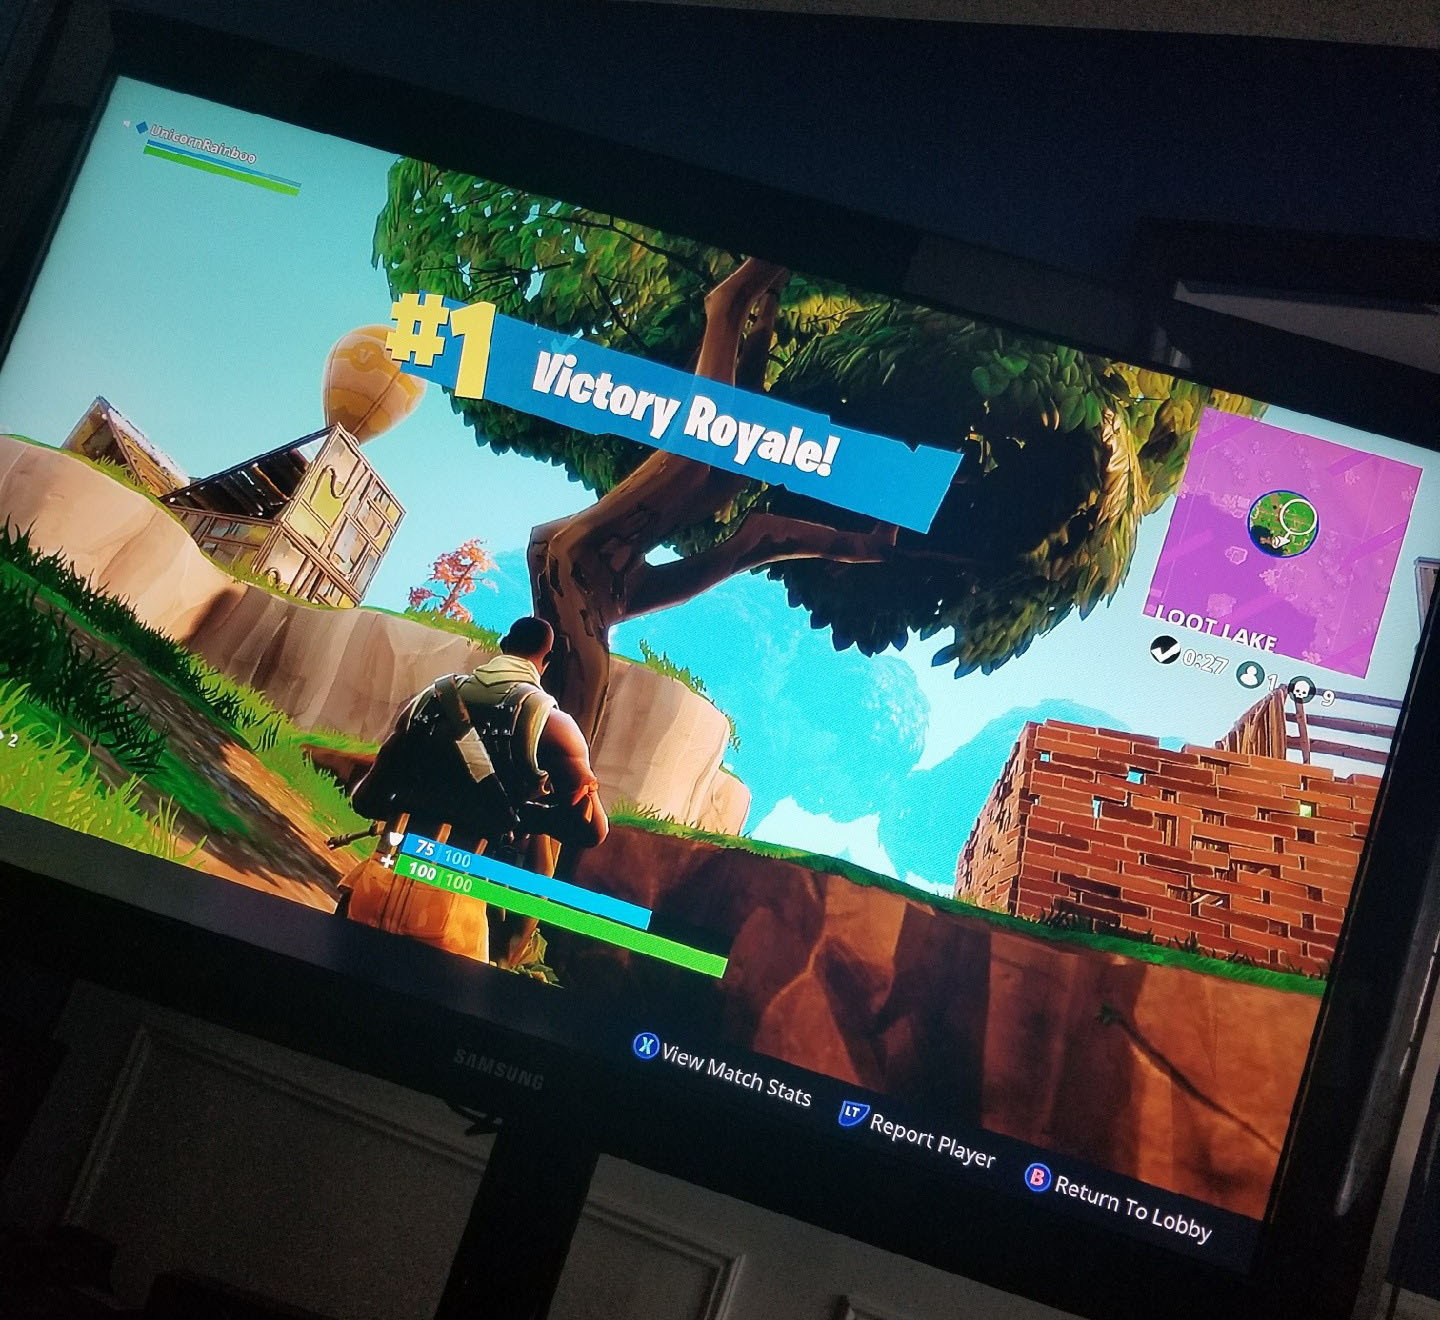 how to play fortnite on school computer